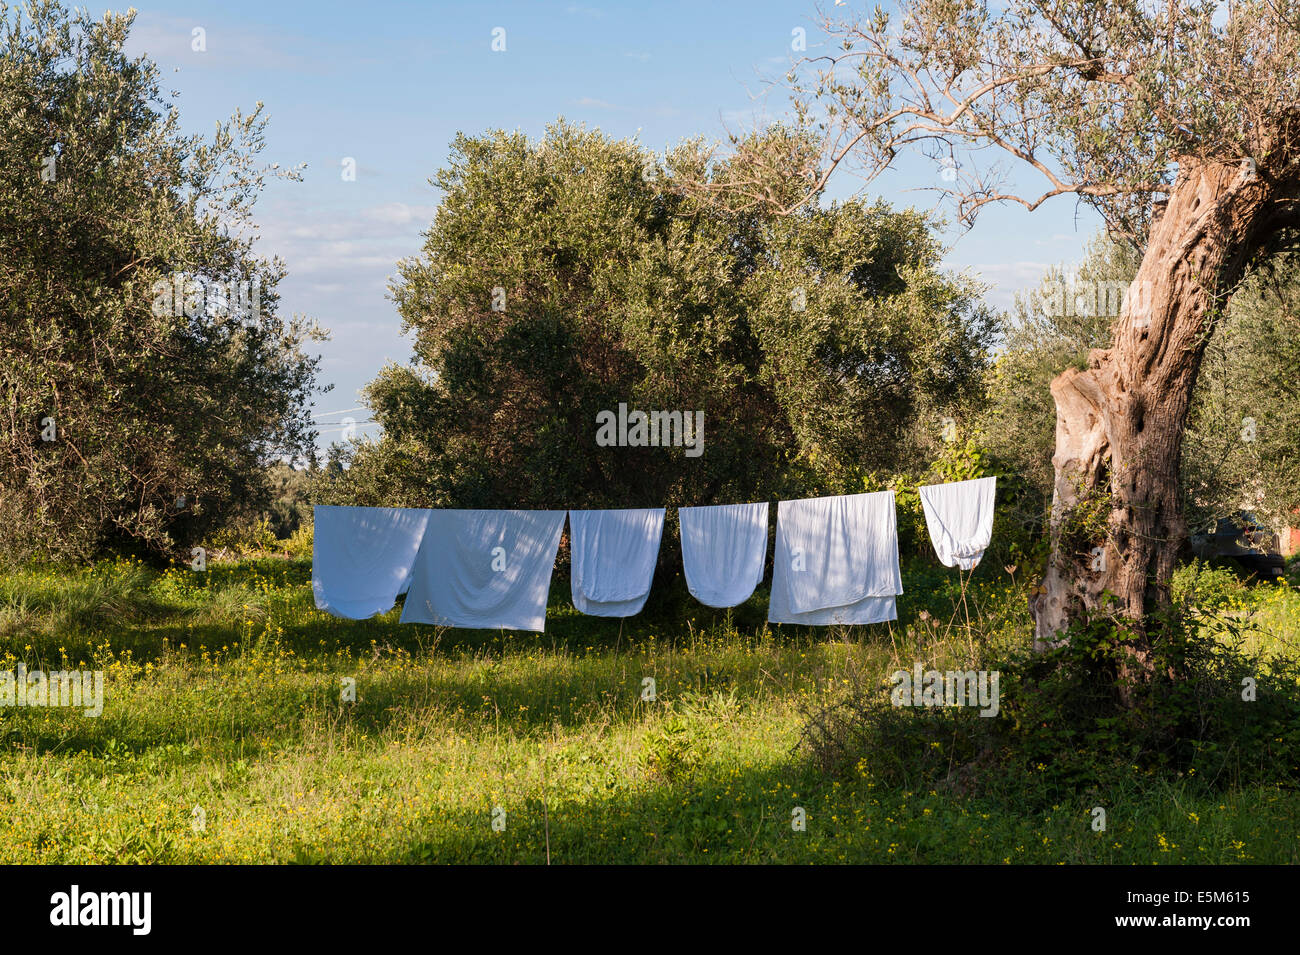 Sheets hung out to dry in the sunshine on a washing line in a Sicilian olive grove, Italy - Stock Image